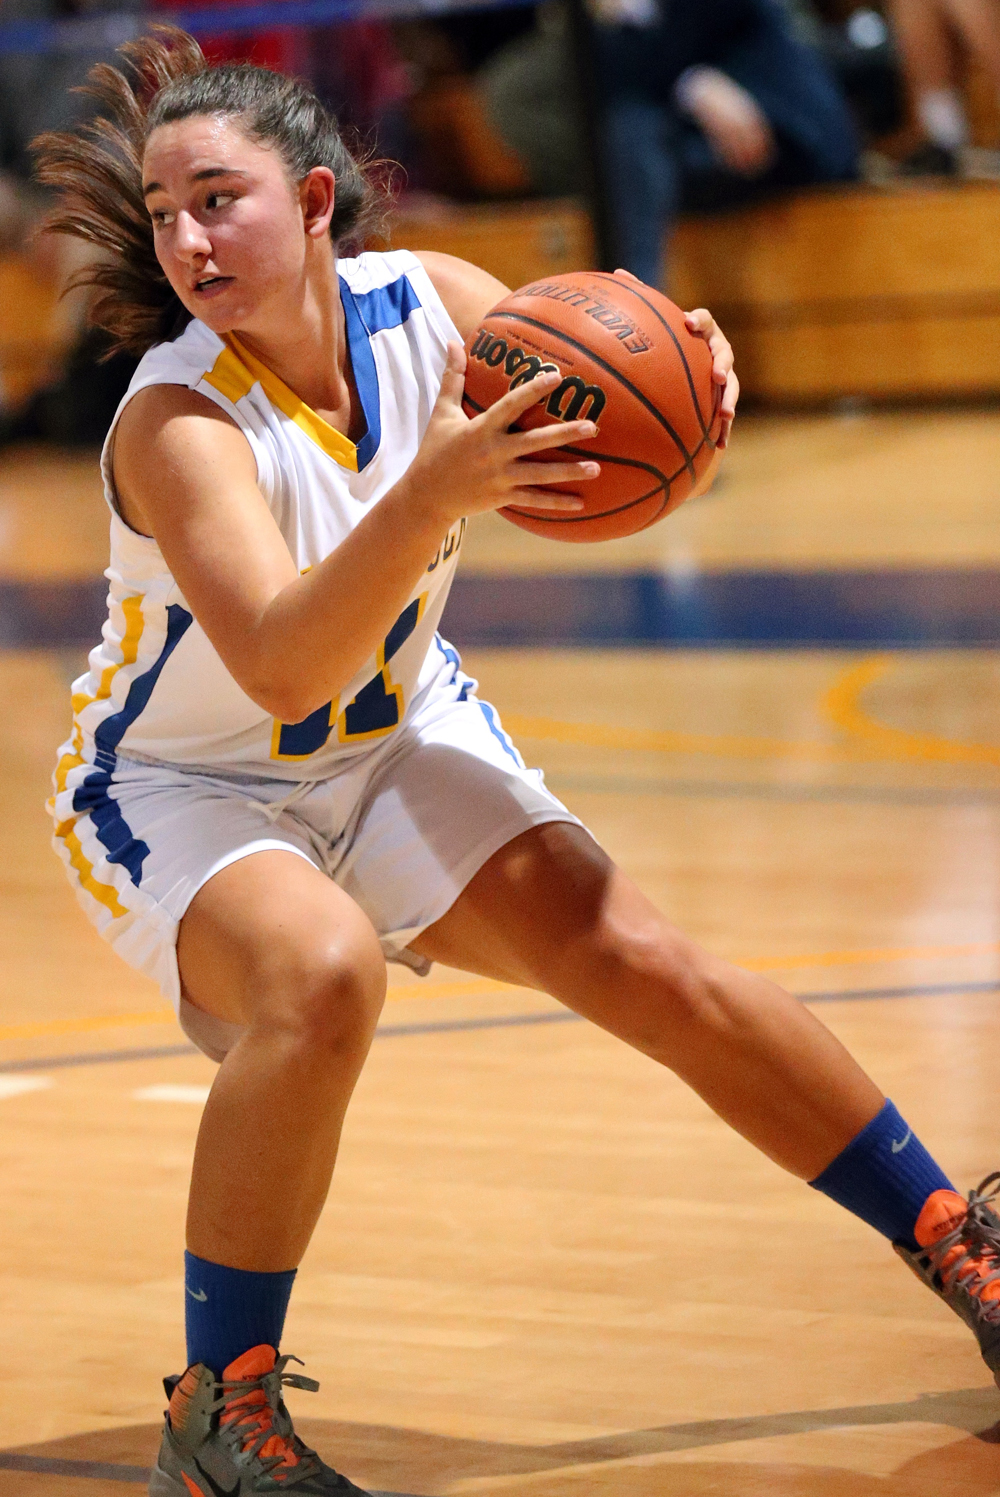 Mattituck's Courtney Penny looks to make a move. (Credit: Garret Meade)